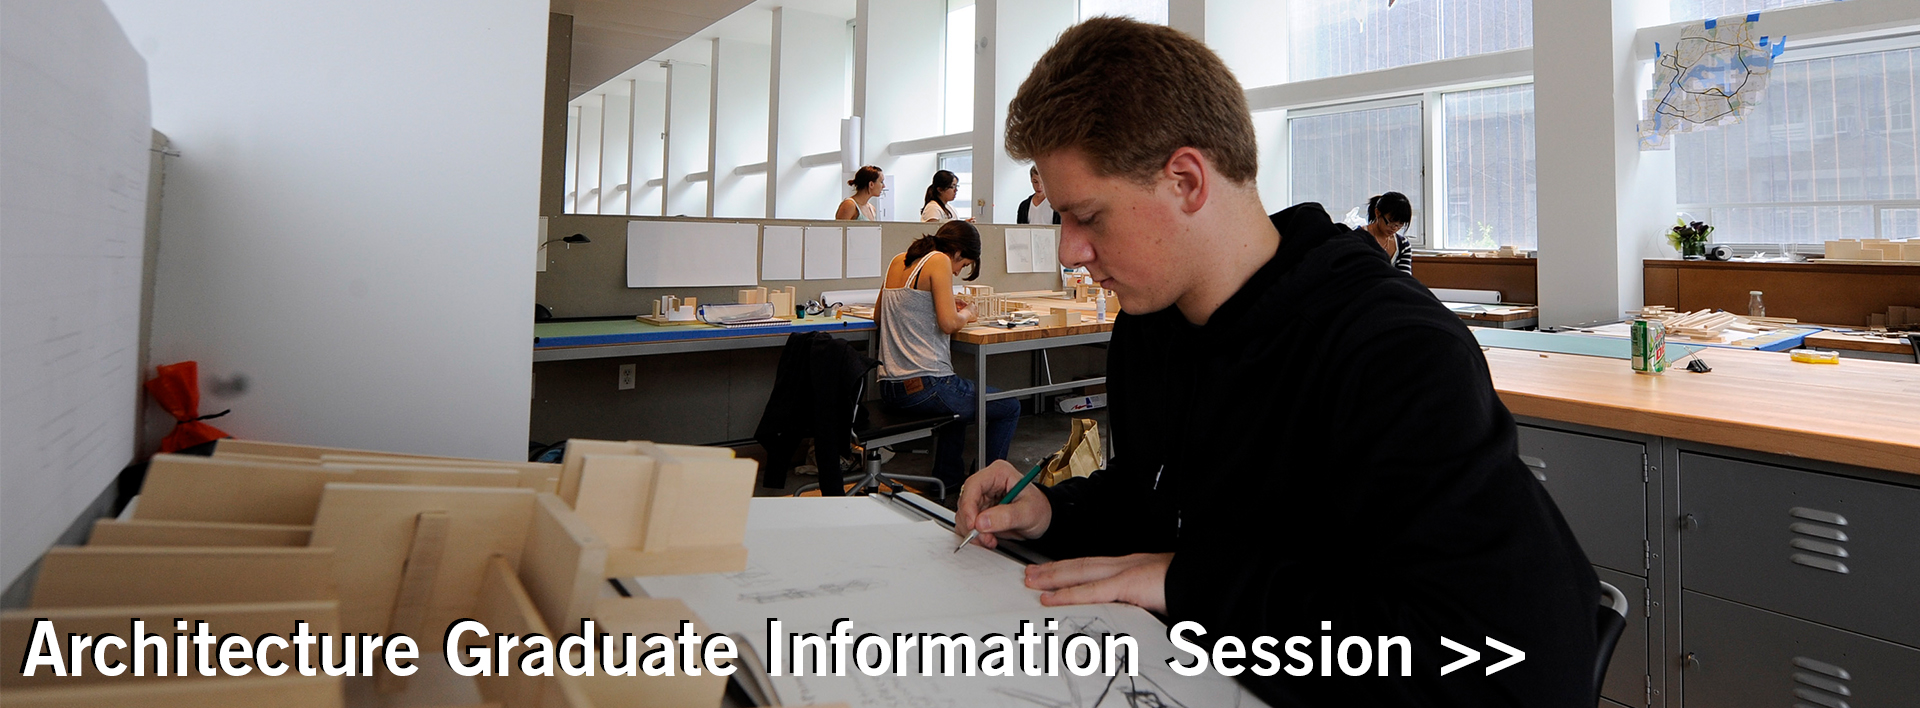 Spitzer School of Architecture Graduate Information Session banner